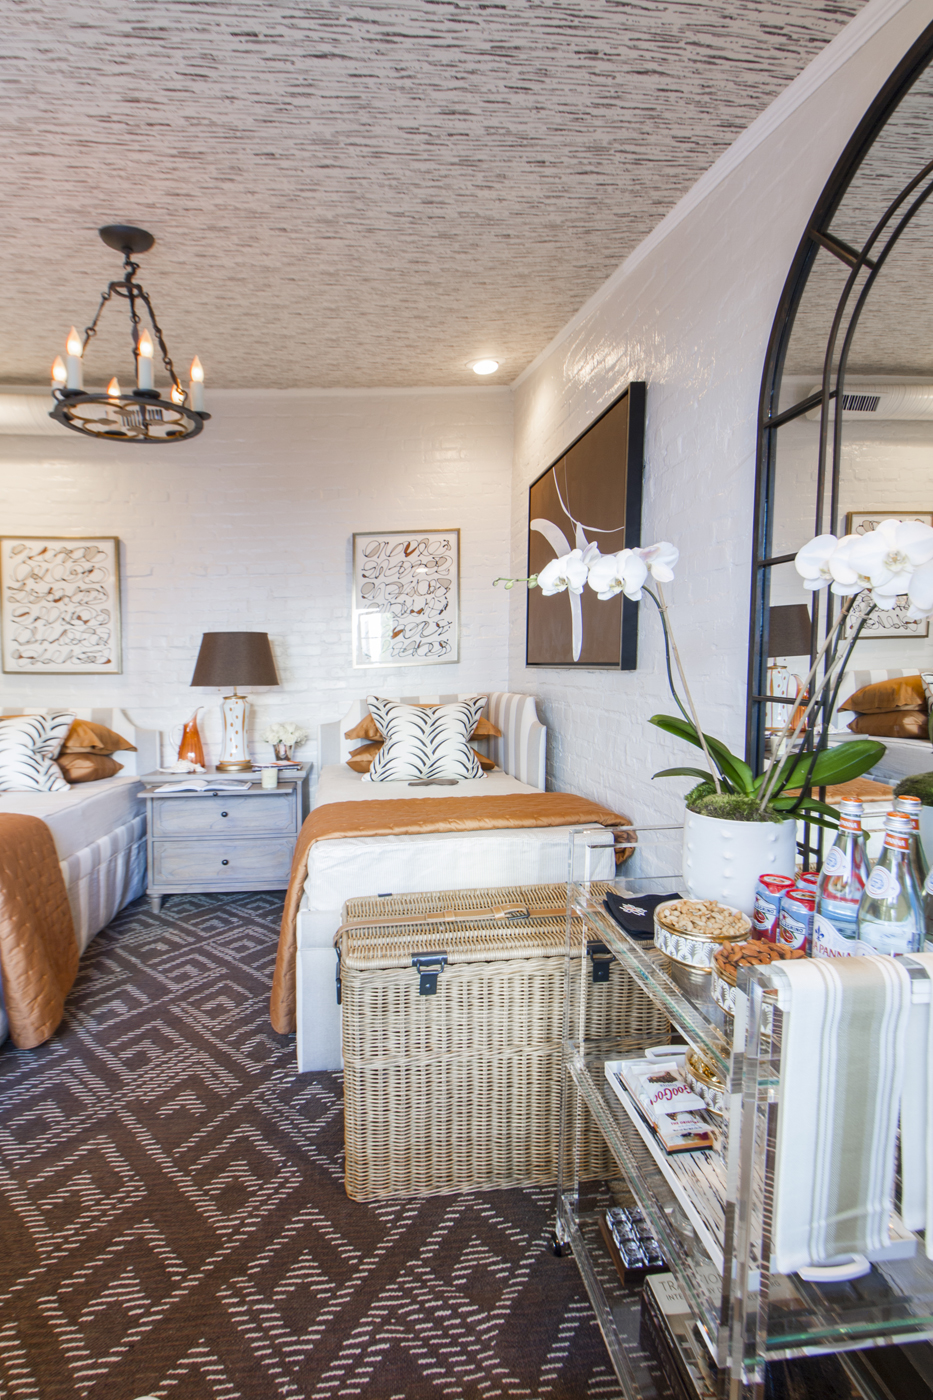 Wicker basket and acrylic lucite table accents in bedroom installation at show house | Savage Interior Design